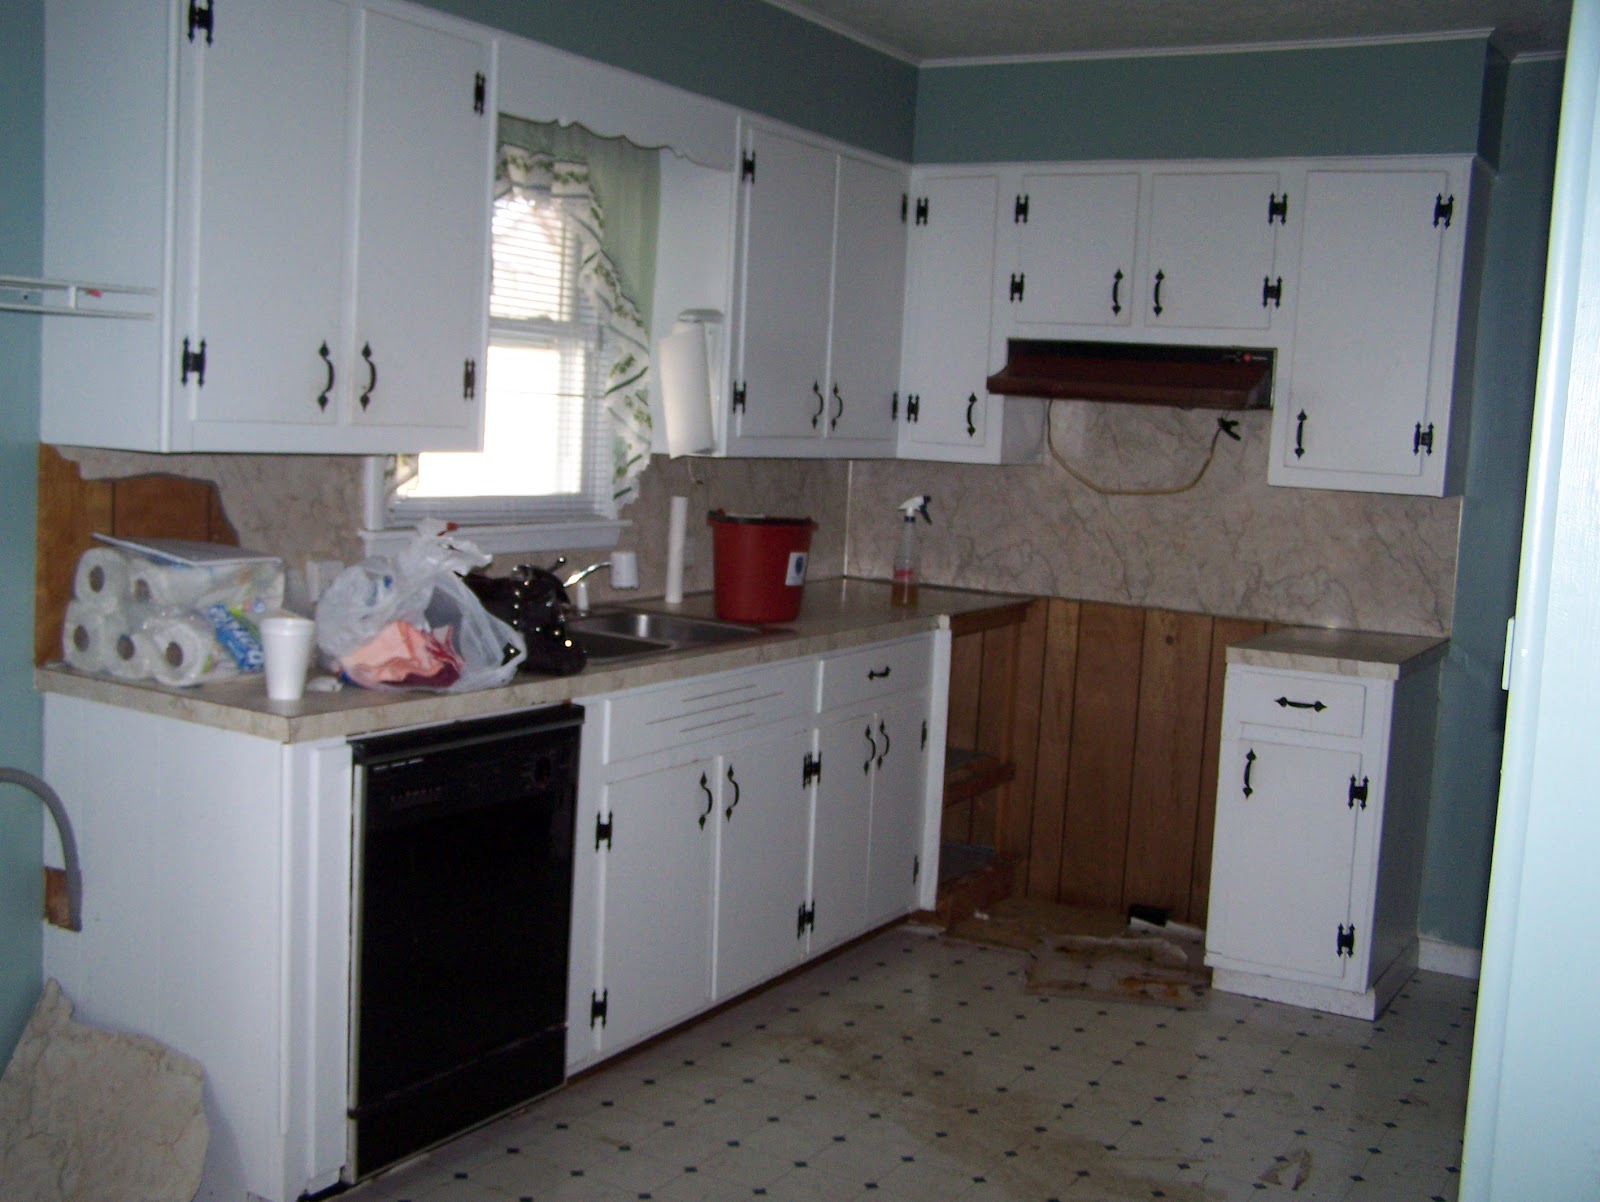 Grace lee cottage updating old kitchen cabinets for Making old kitchen cabinets look modern